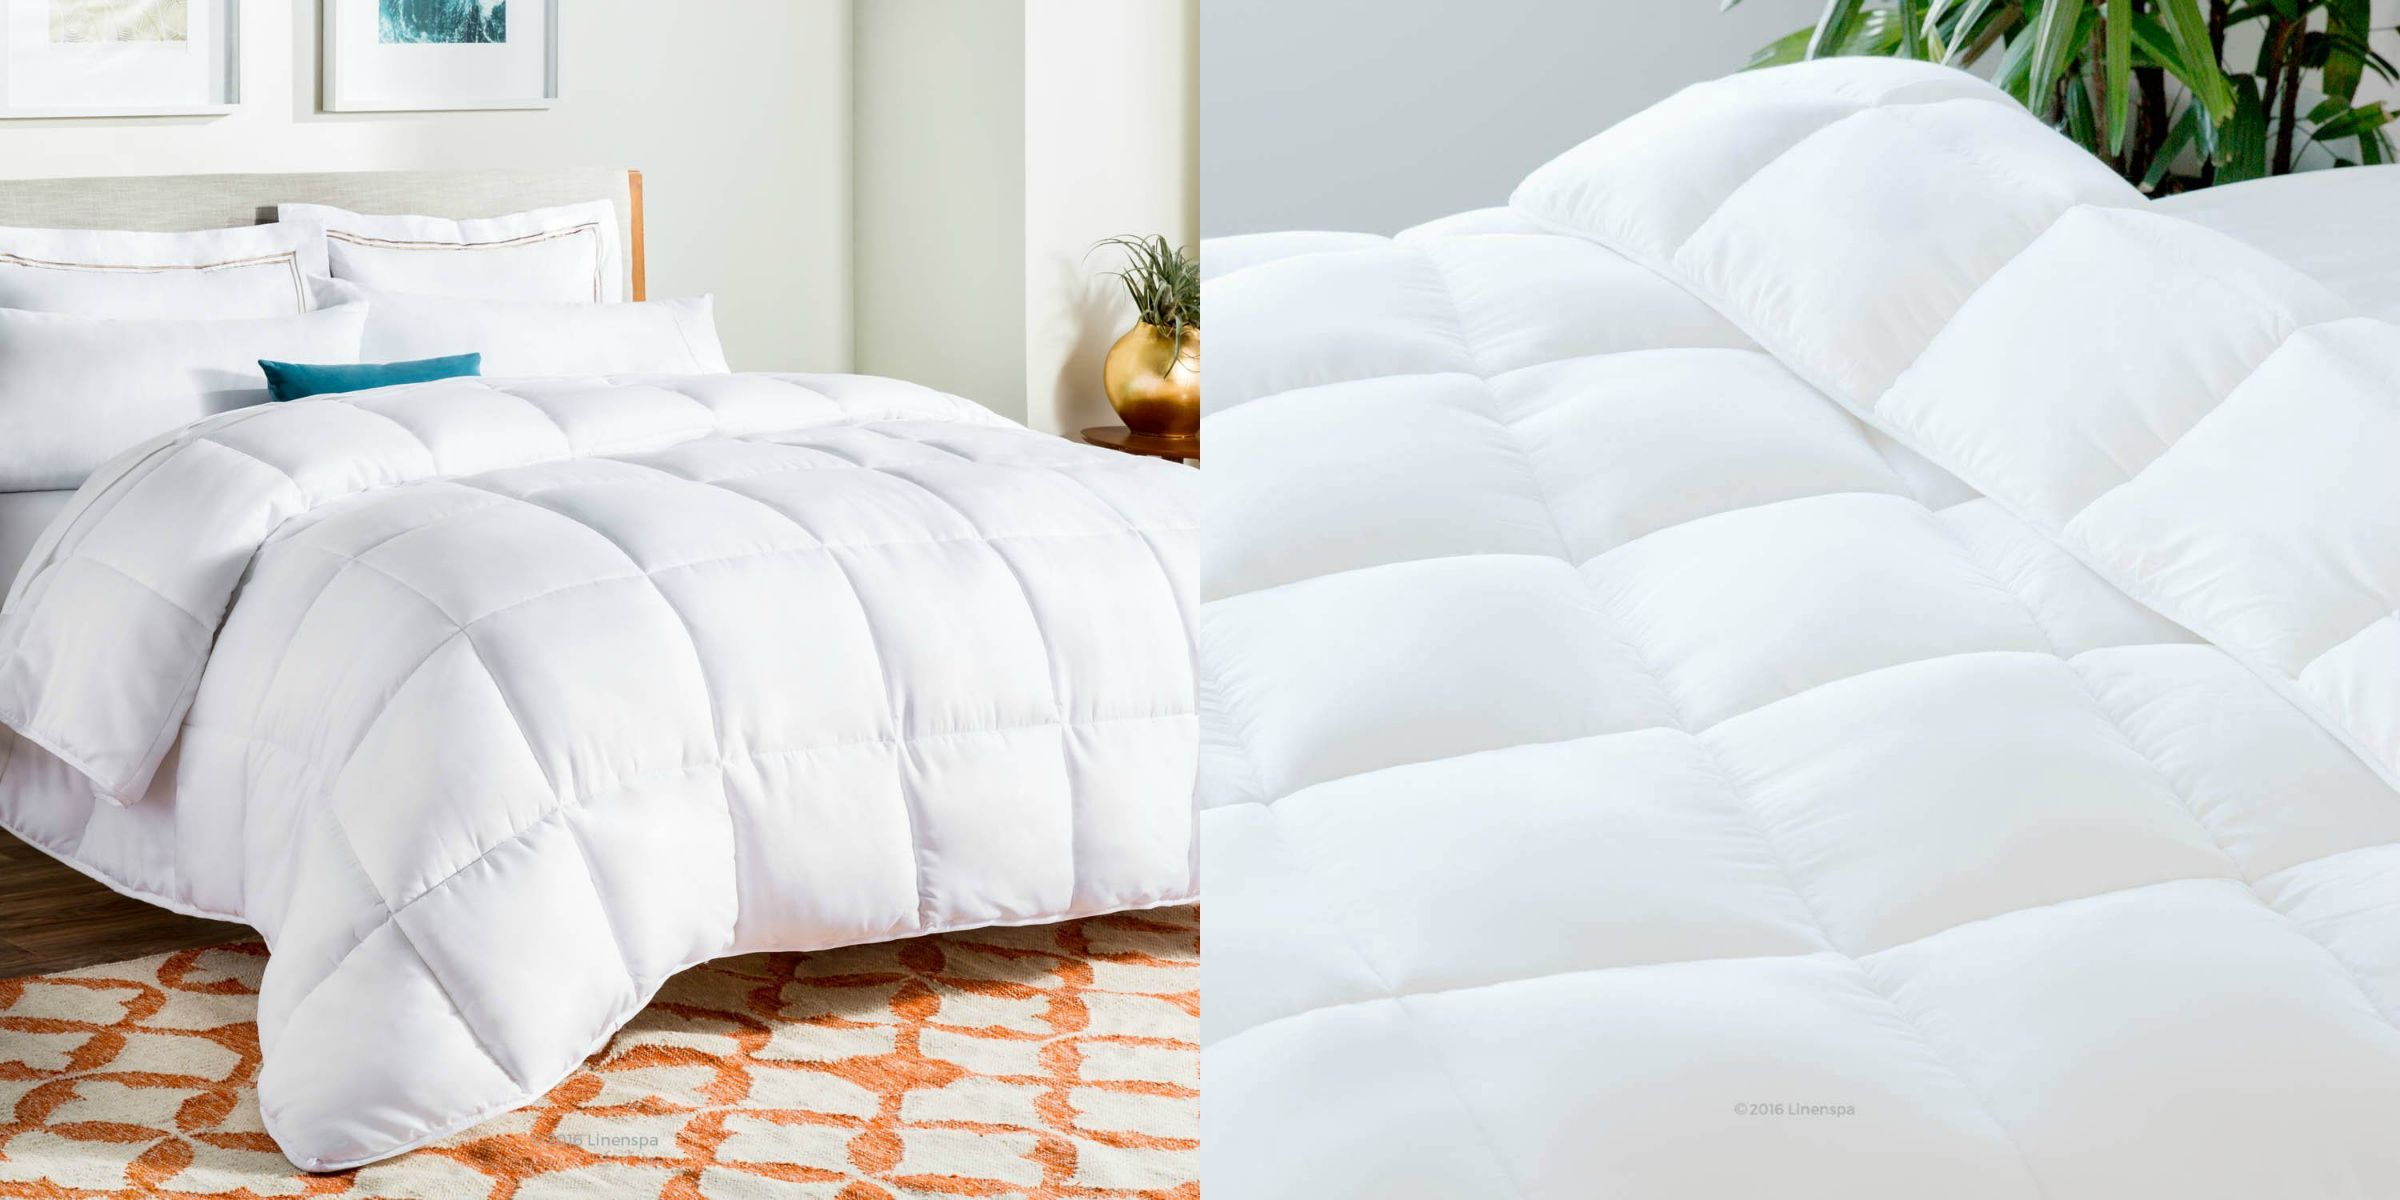 This $30 Comforter Has More Than 7,000 5-Star Amazon Reviews